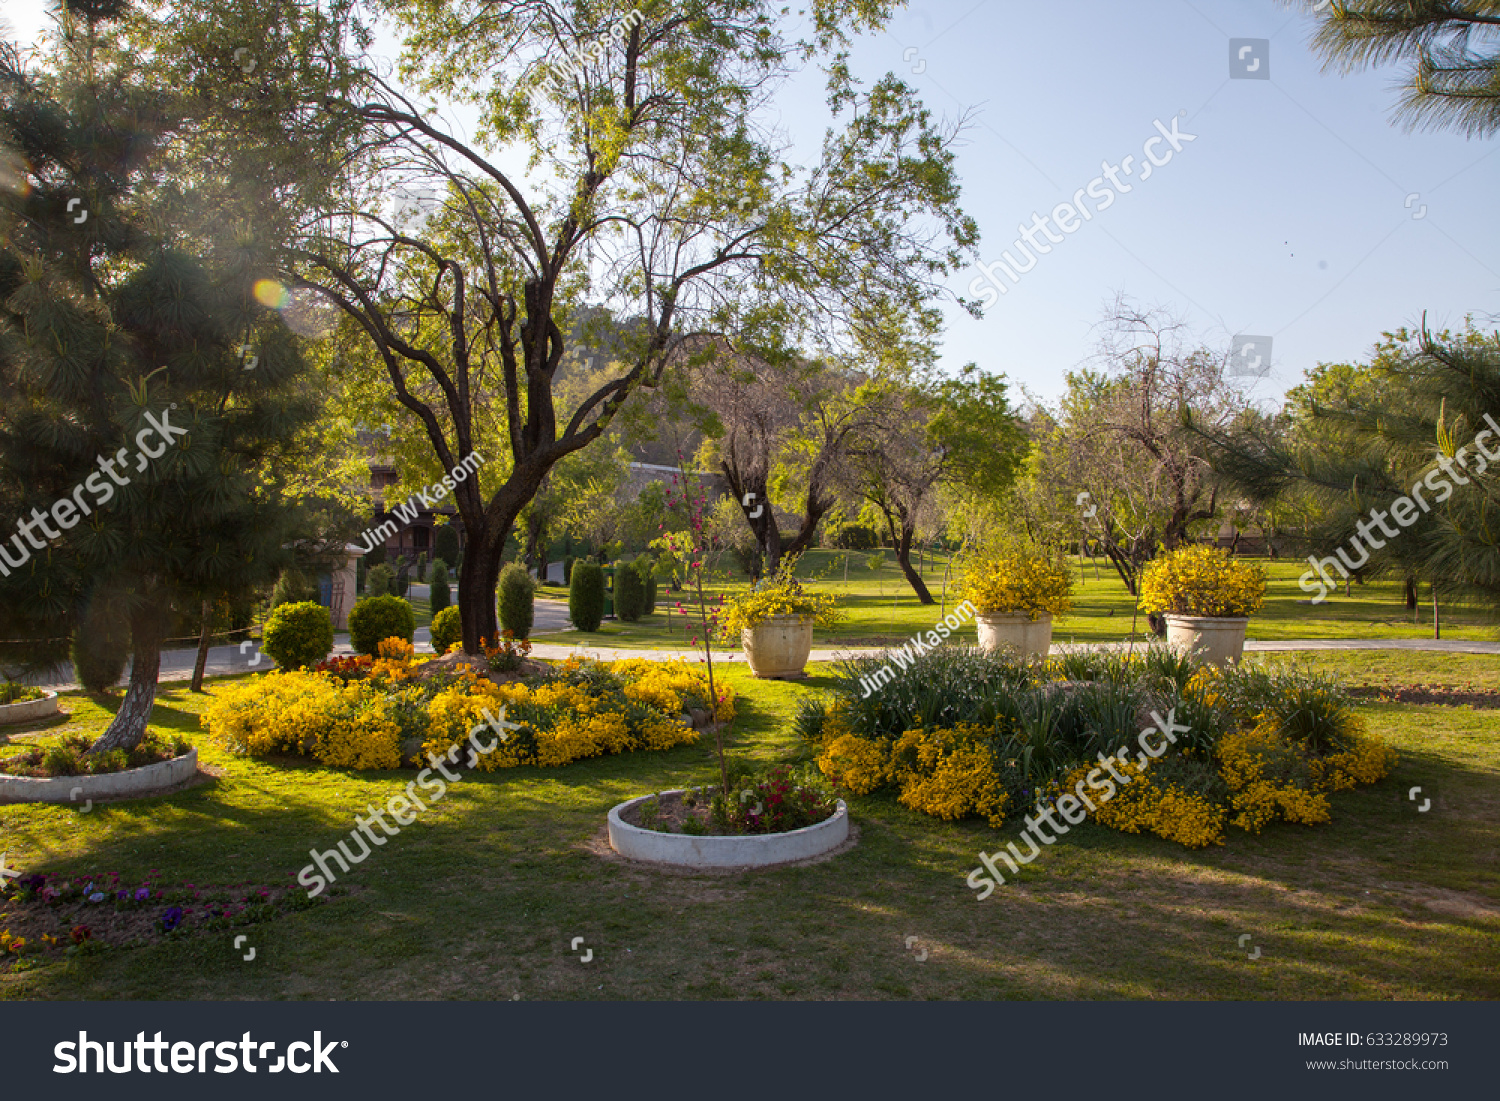 Springtime Badamwari Garden Srinagar Stock Photo (Royalty Free ...